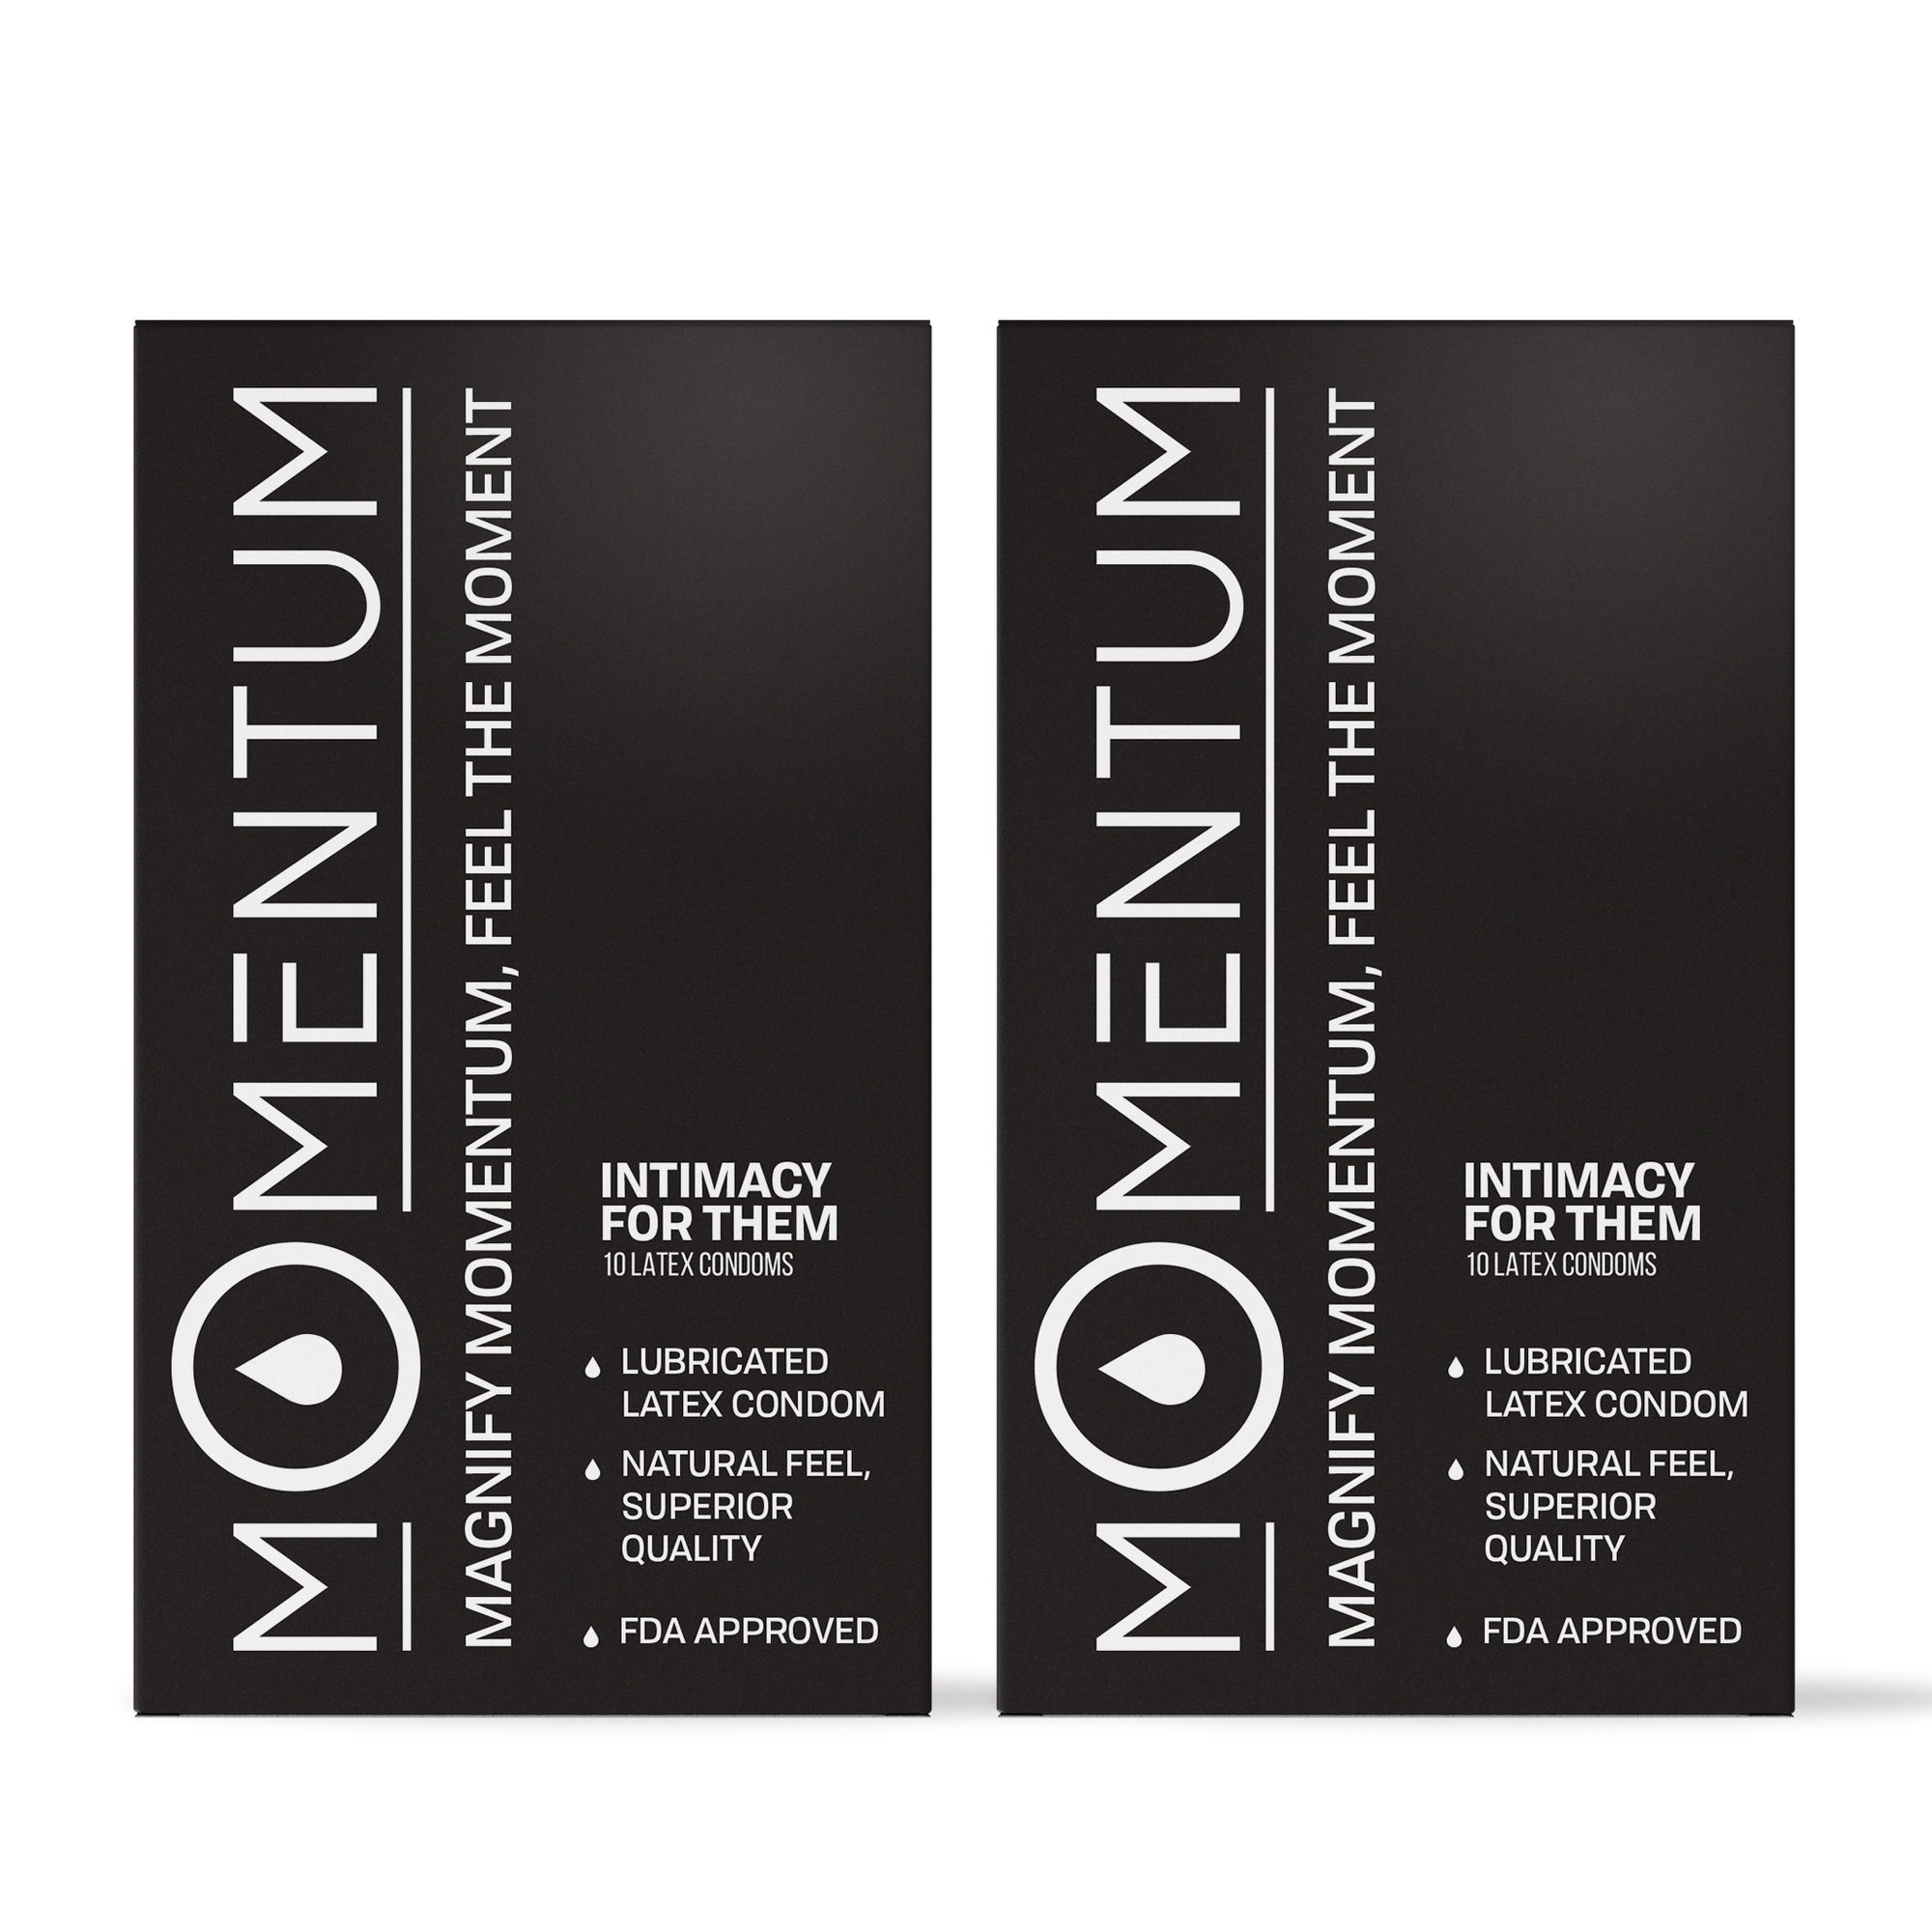 Momentum Condoms For THEM- Momentum Intimacy by Dr. Drai